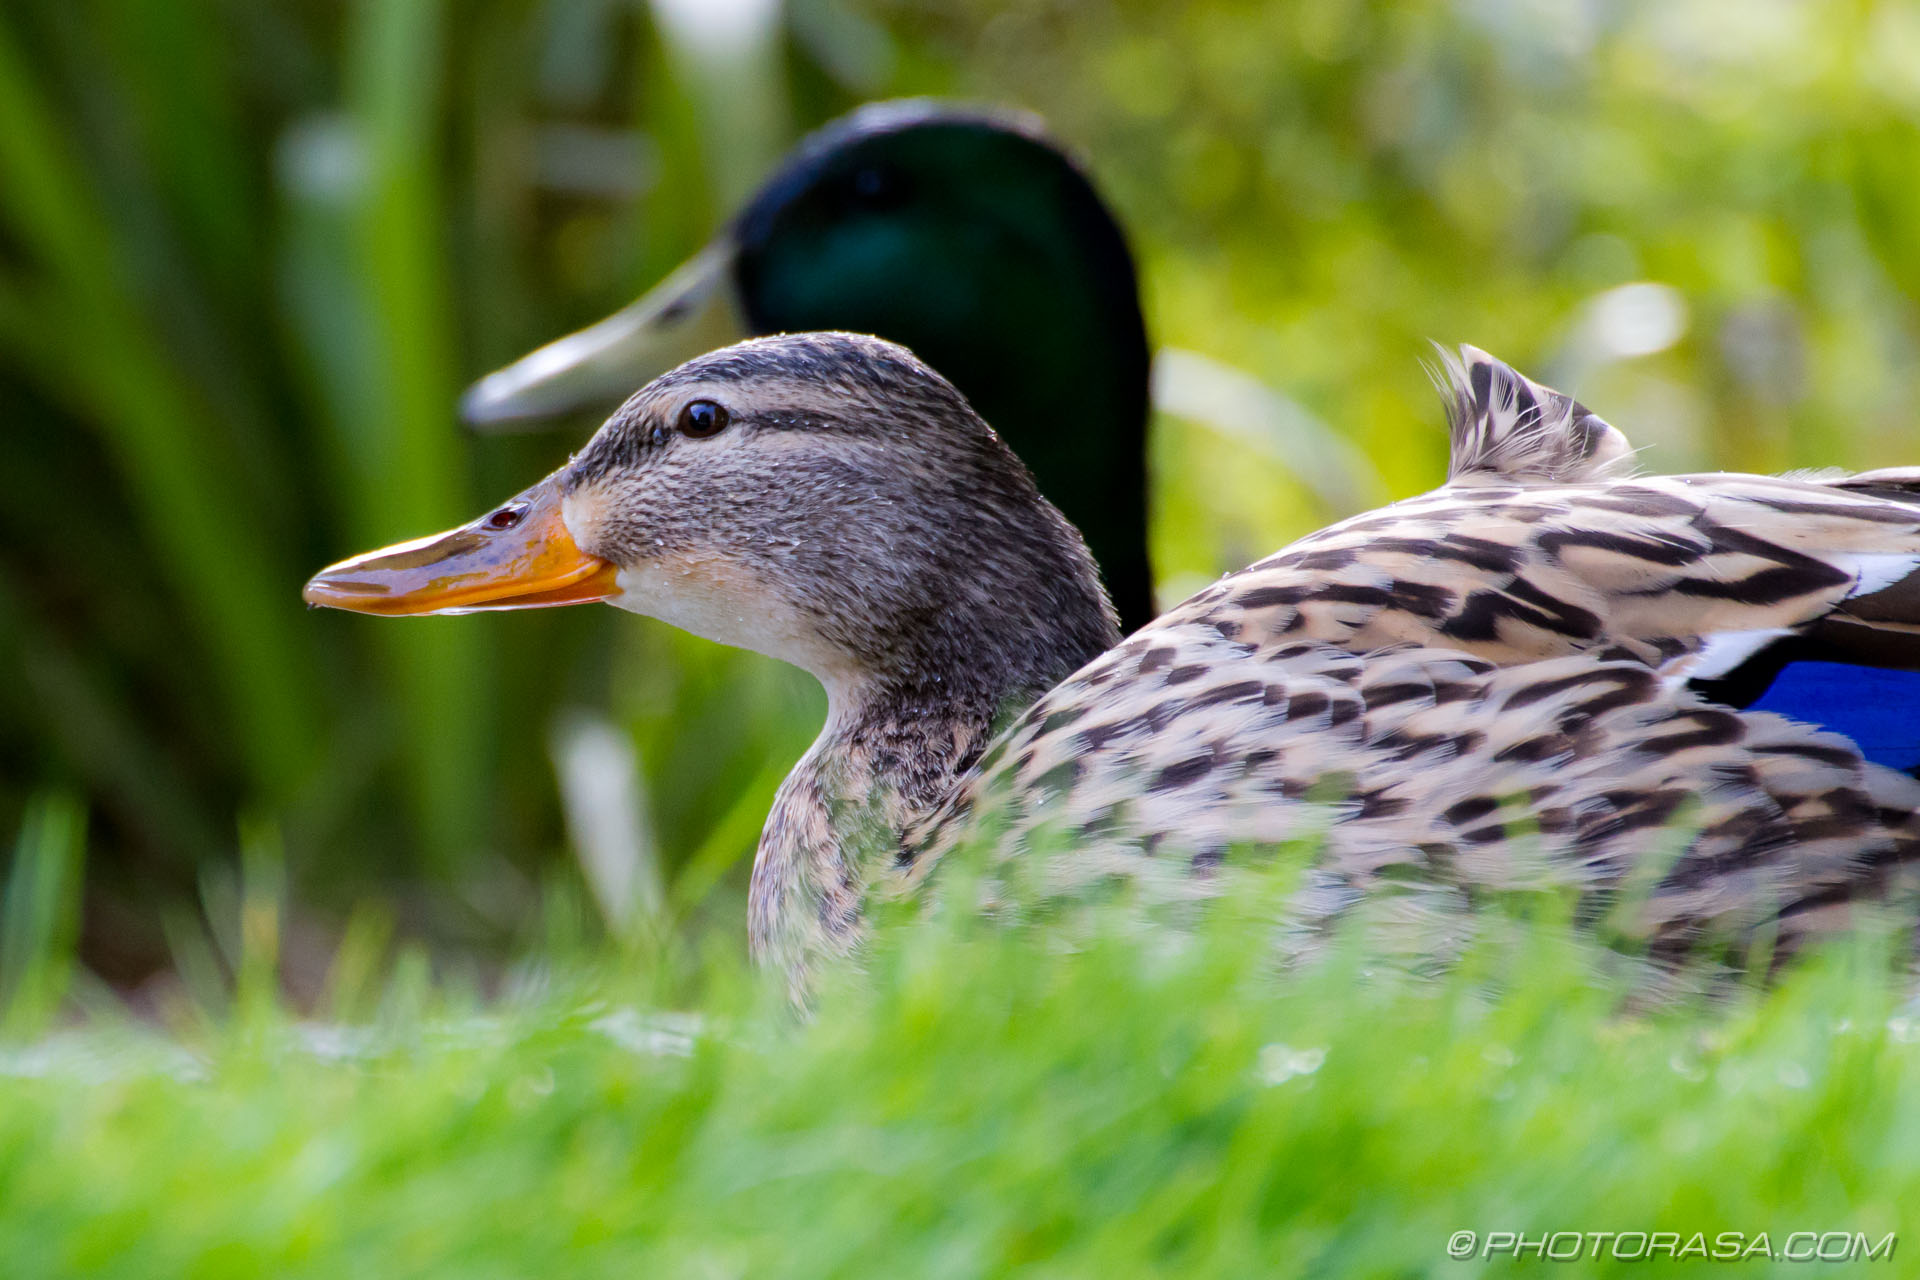 http://photorasa.com/mallard-ducks/two-ducks-at-pond/